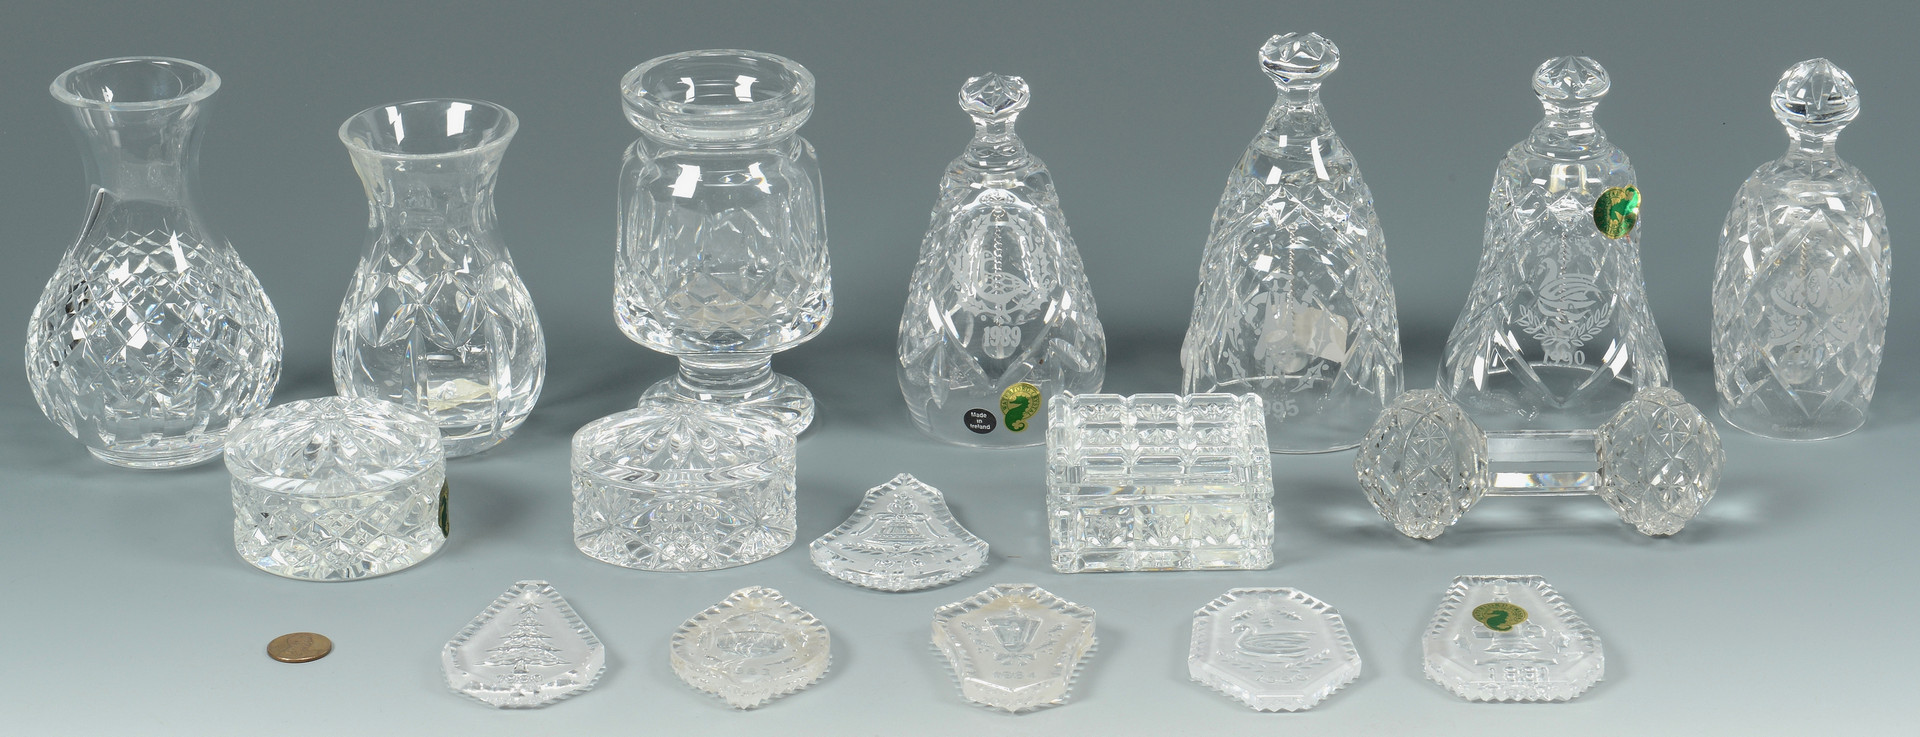 Lot 773: 17 Waterford Crystal Items